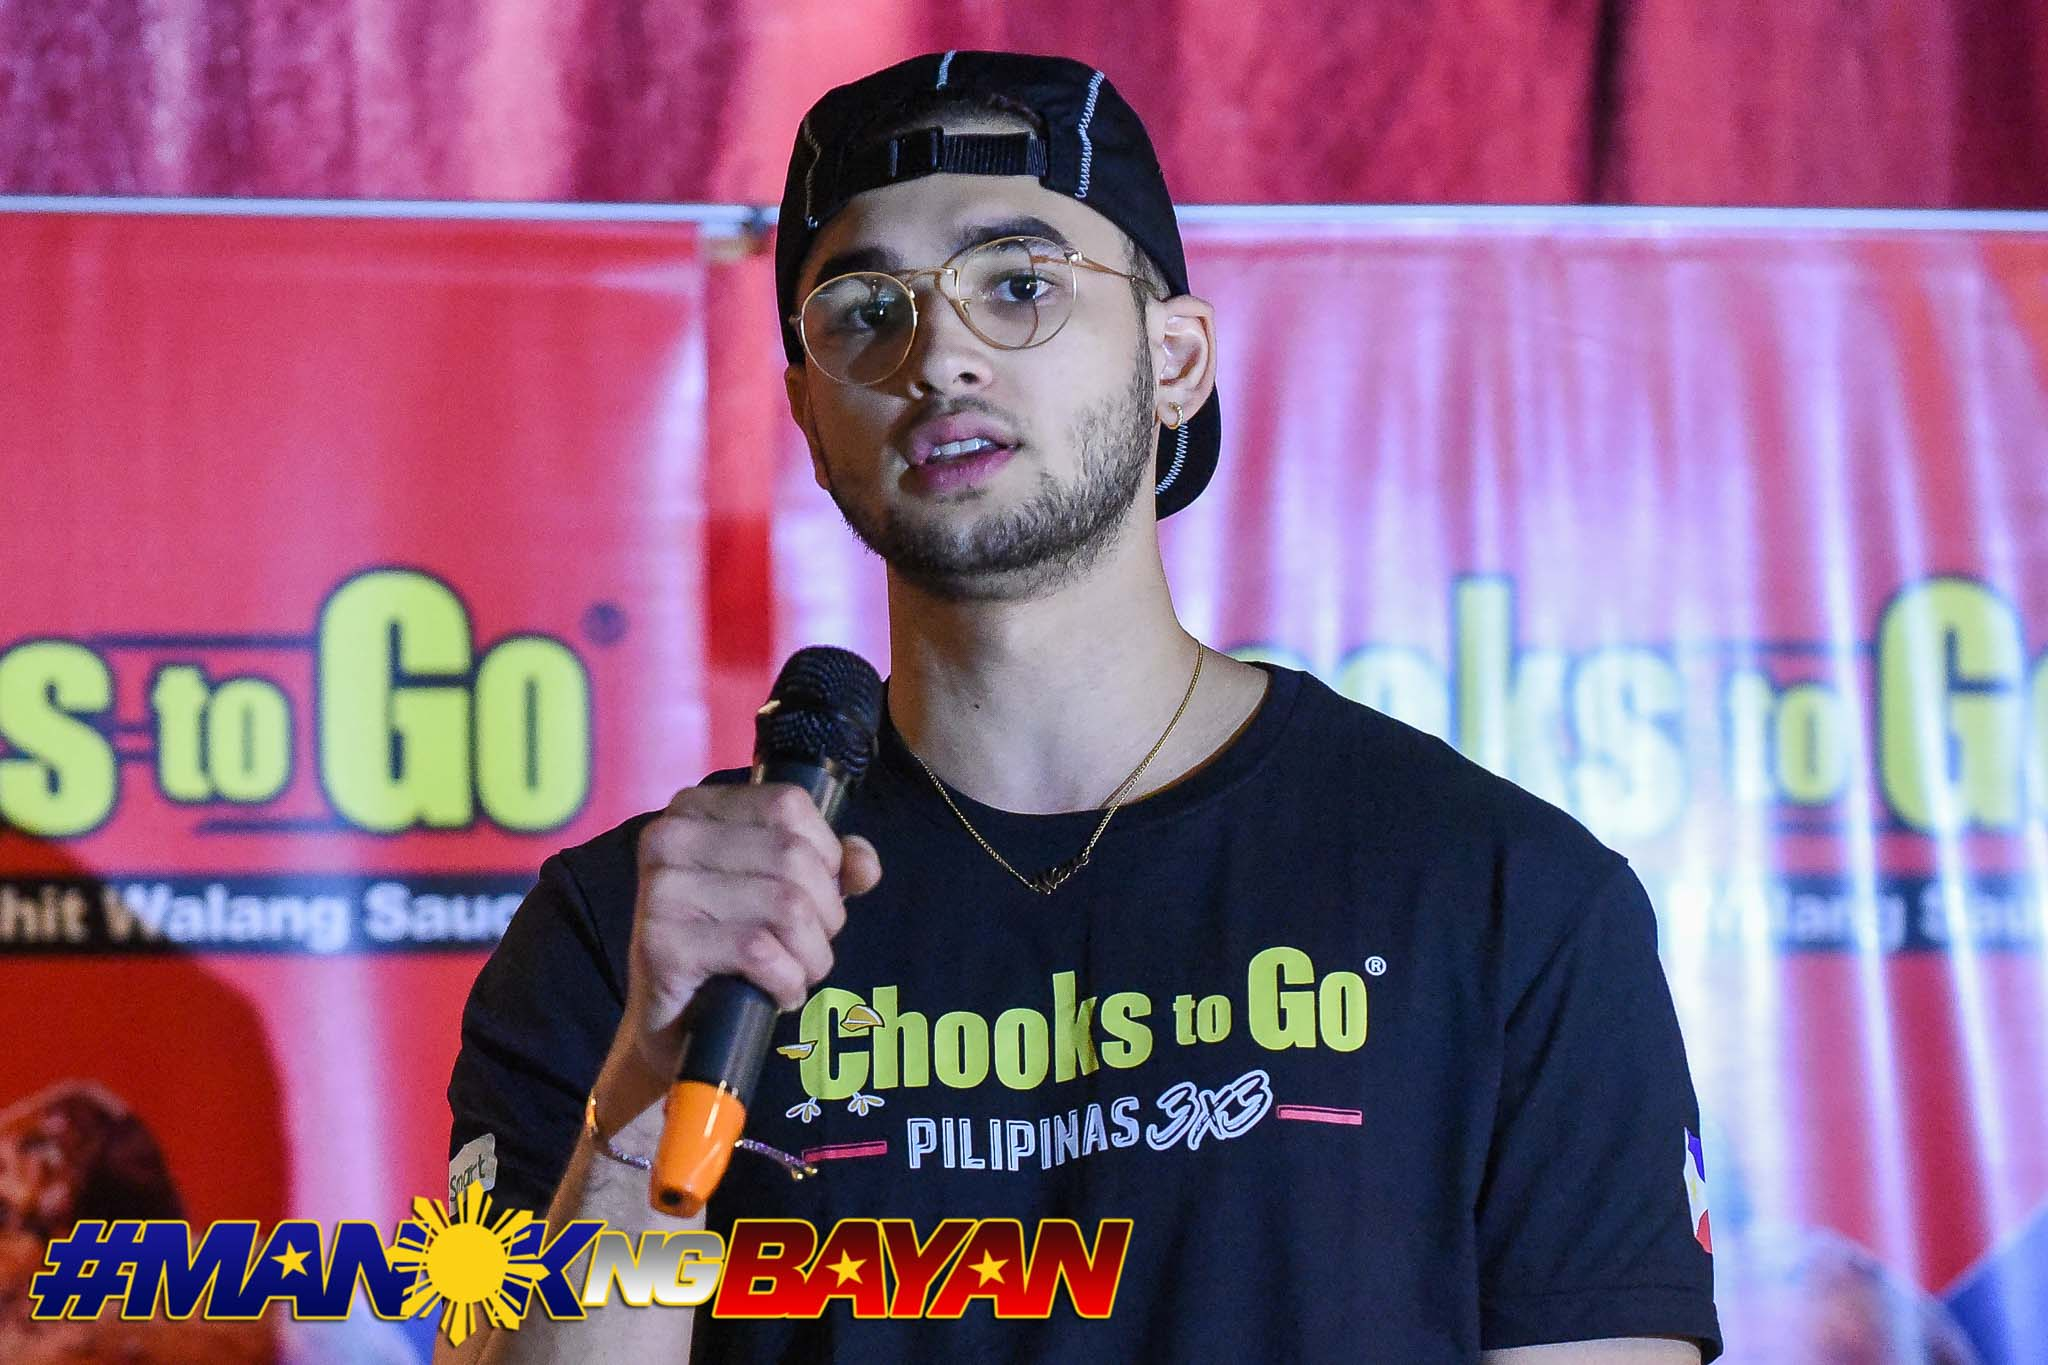 Tiebreaker Times Kobe Paras to join Chooks-to-Go, SBP in attempt to break world record 3x3 Basketball Chooks-to-Go Pilipinas 3x3 News  Ronald Mascarinas Kobe Paras 2019 Chooks-to-Go Pilipinas 3x3 Season